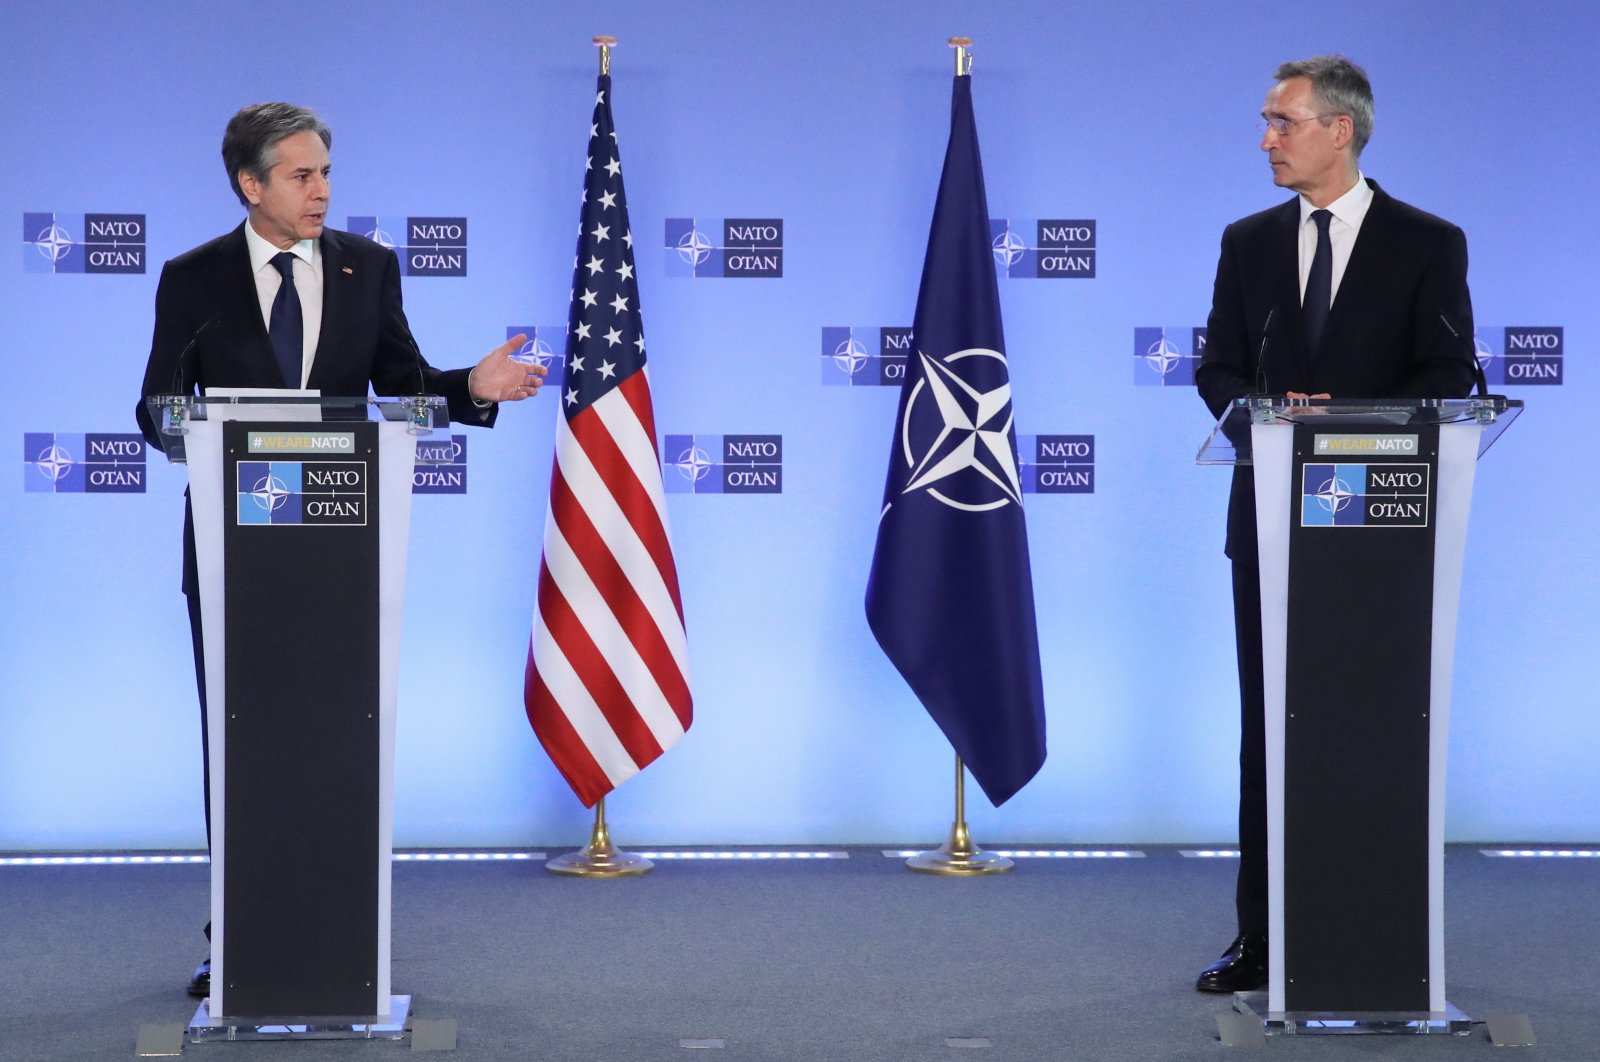 U.S. Secretary of State Antony Blinken and NATO Secretary-General Jens Stoltenberg deliver remarks in a NATO foreign ministers' meeting at the alliance's headquarters in Brussels, Belgium, March 23, 2021. (Reuters Photo)